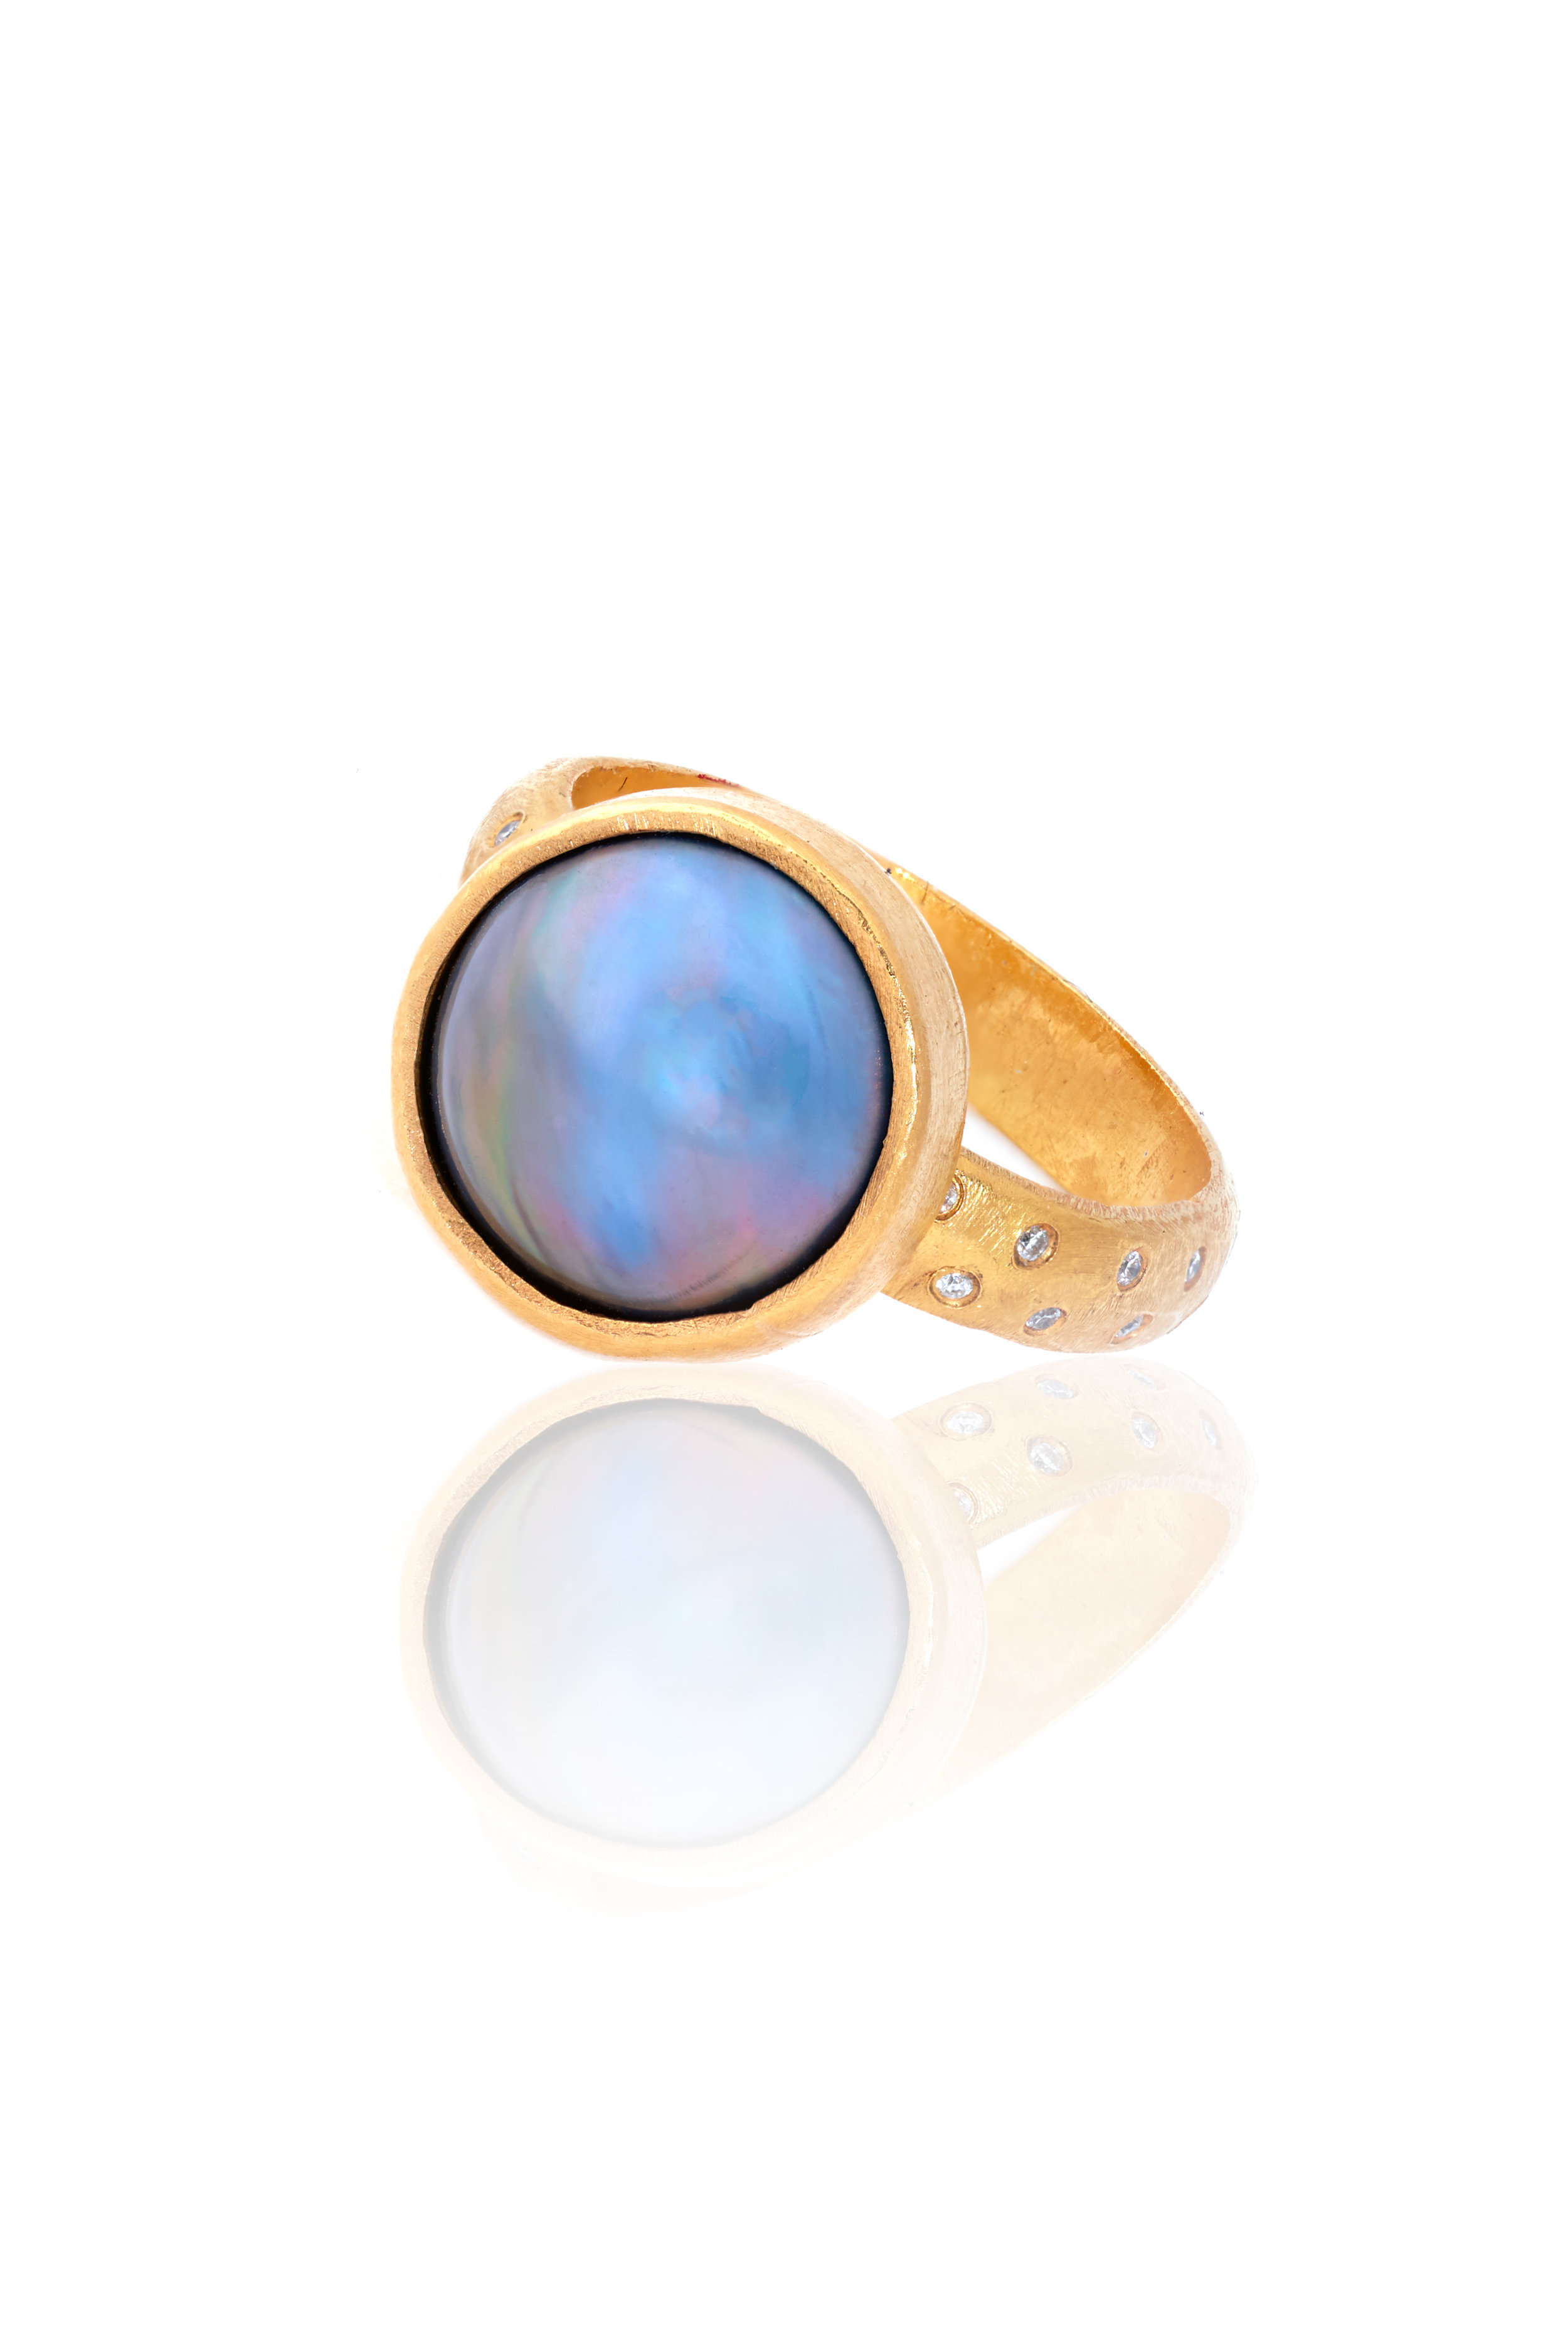 22K gold ring with repurposed heirloom diamonds and blue Mabe pearl -